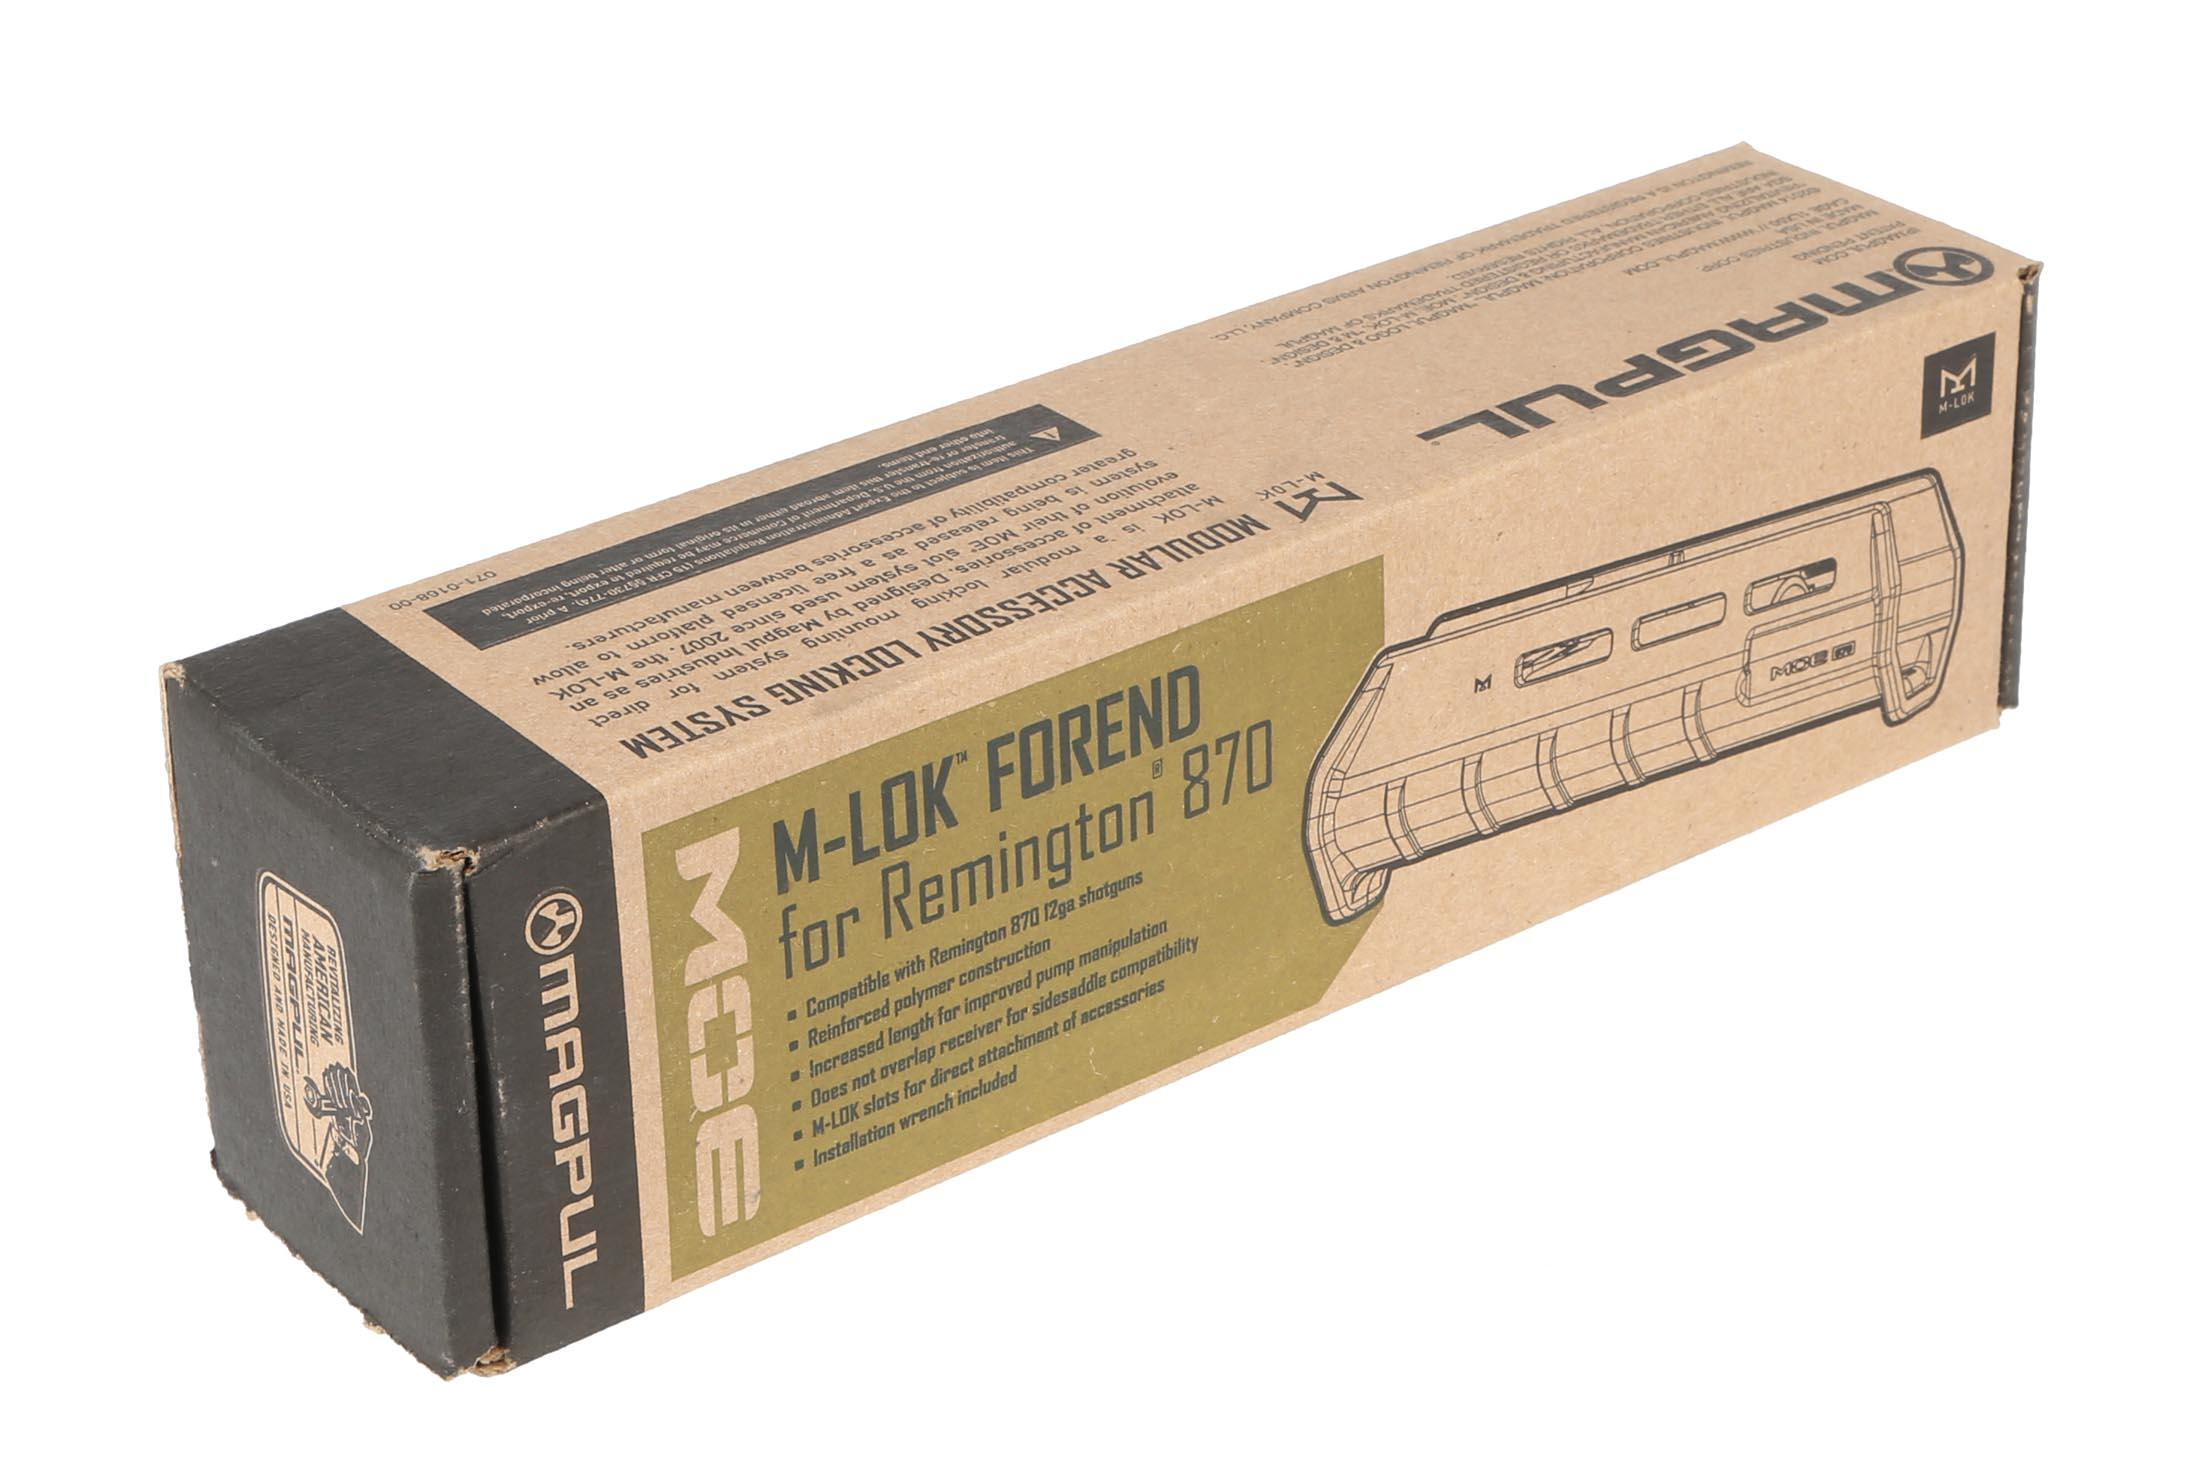 The magpul m-lok stock for remington 870 pump action 12 gauge shotgun comes in a cardboard box